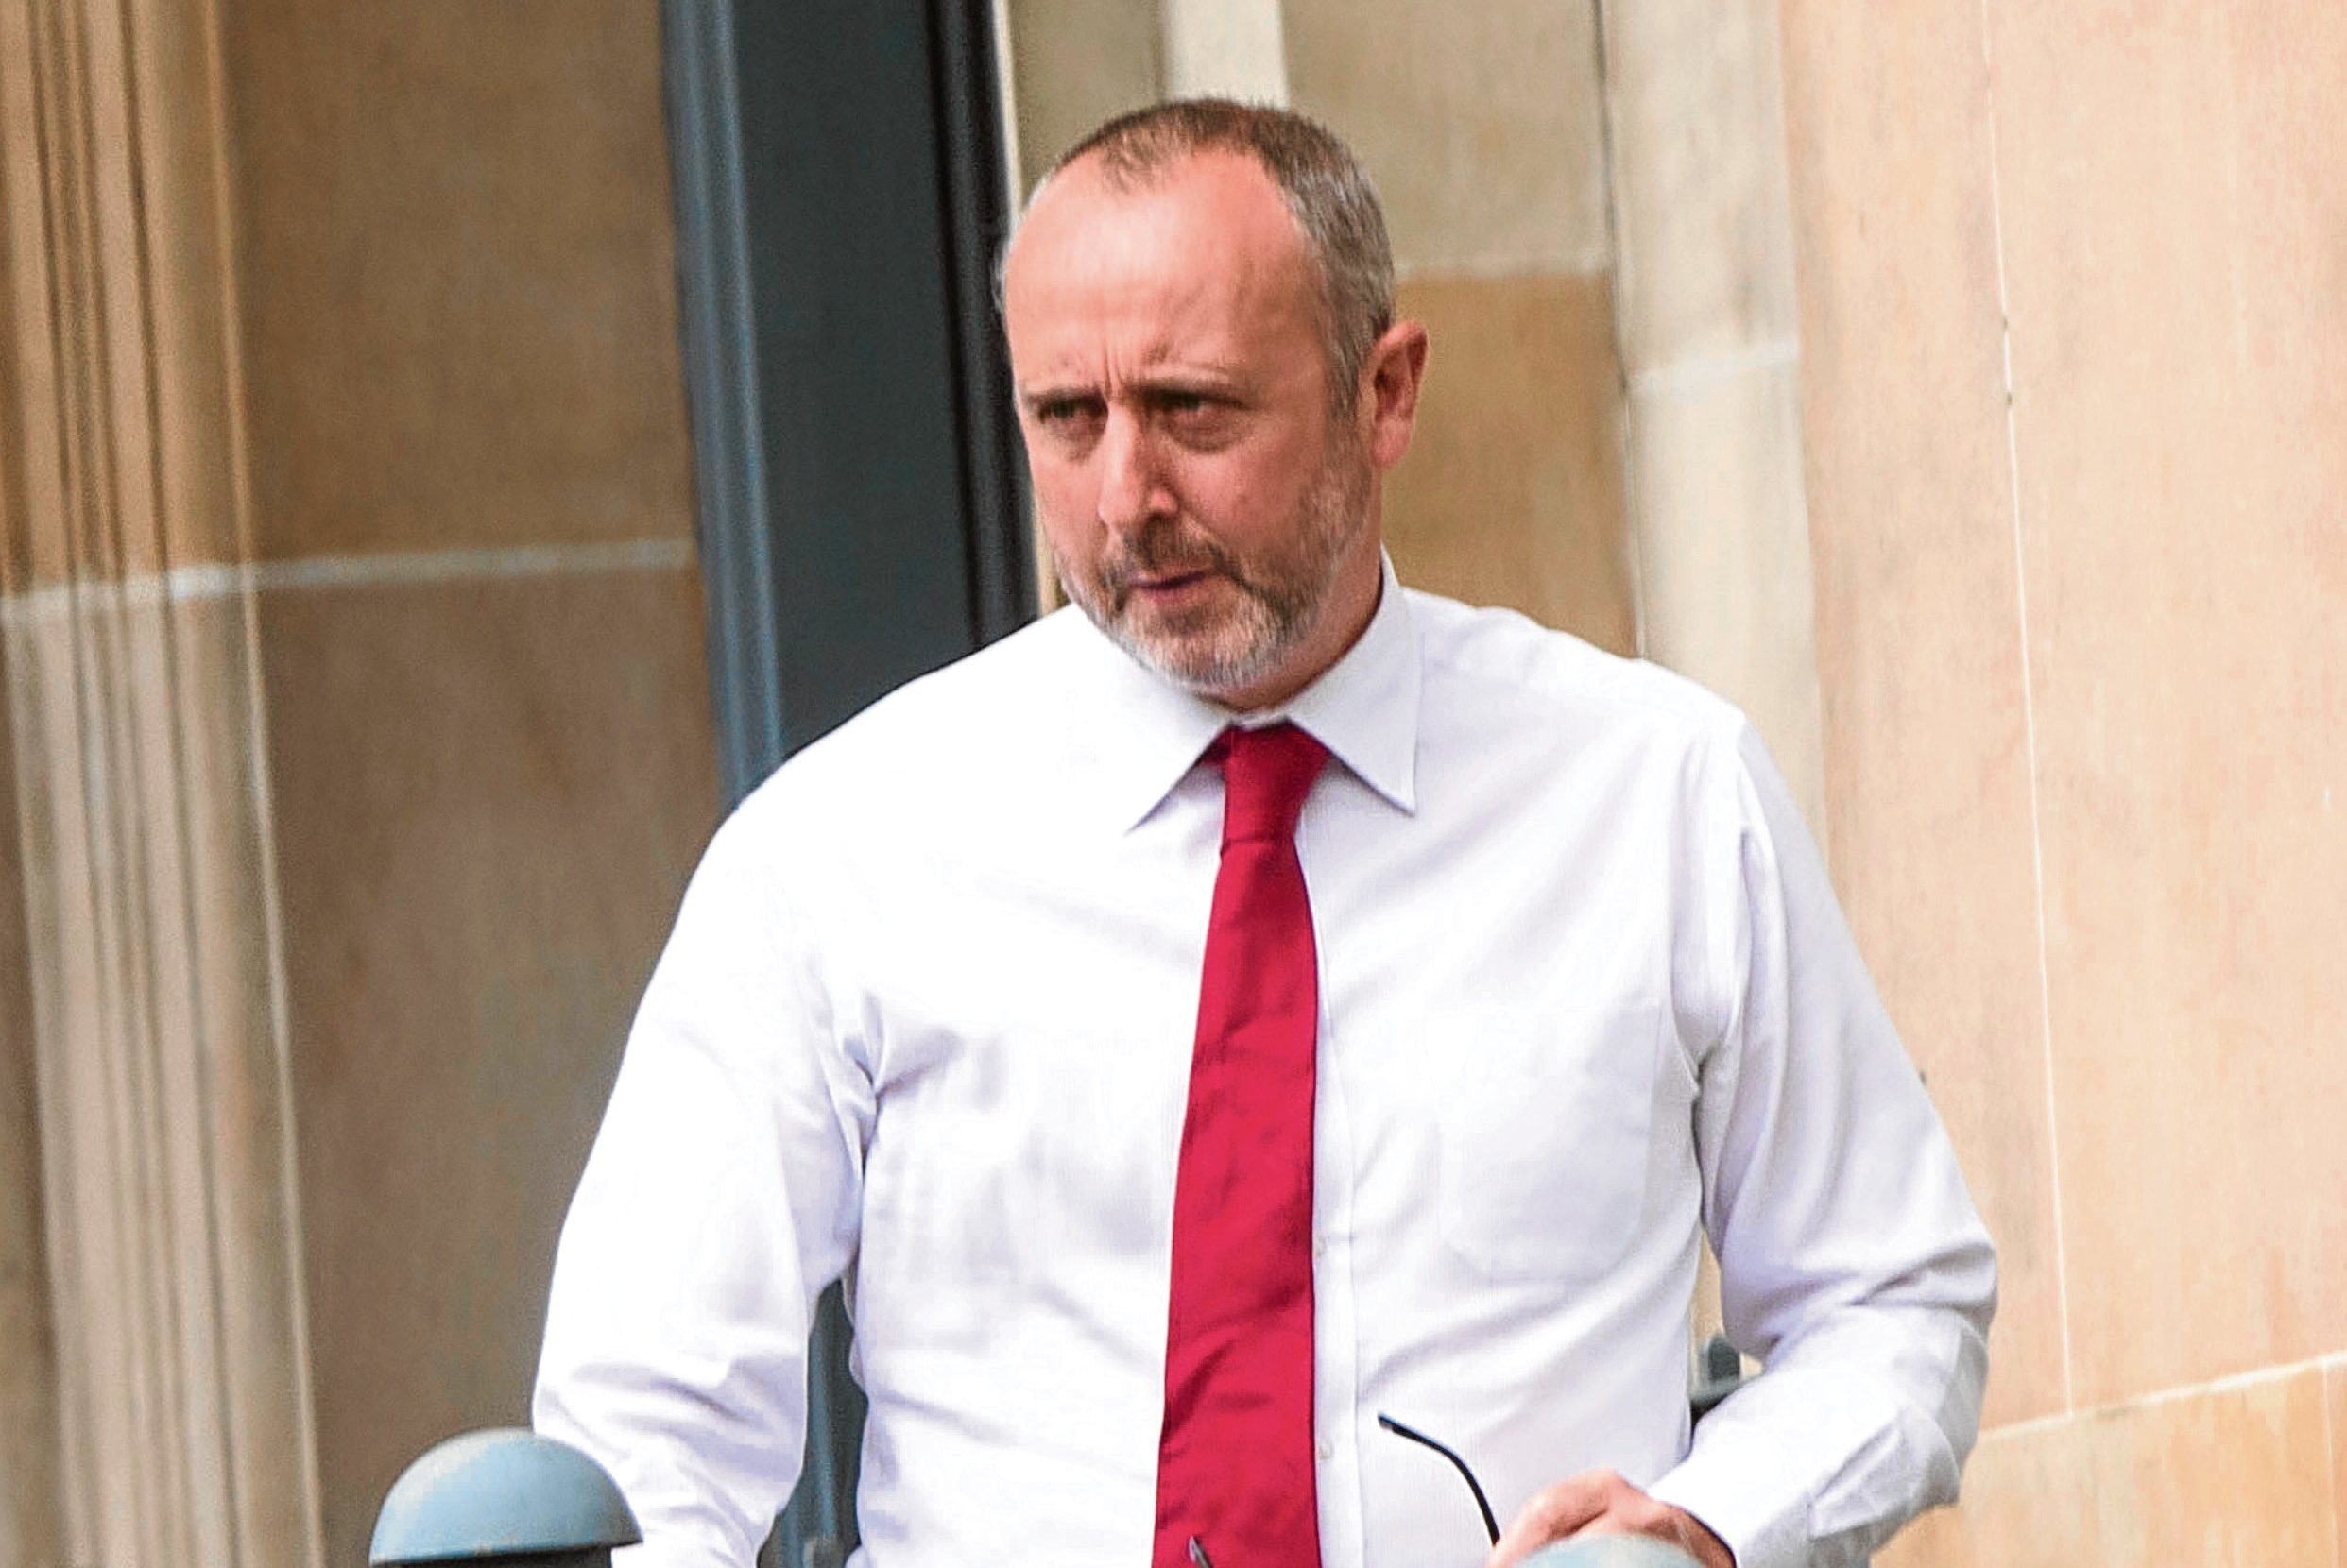 Jonathan Green pled guilty to embezzling more than £73,000.